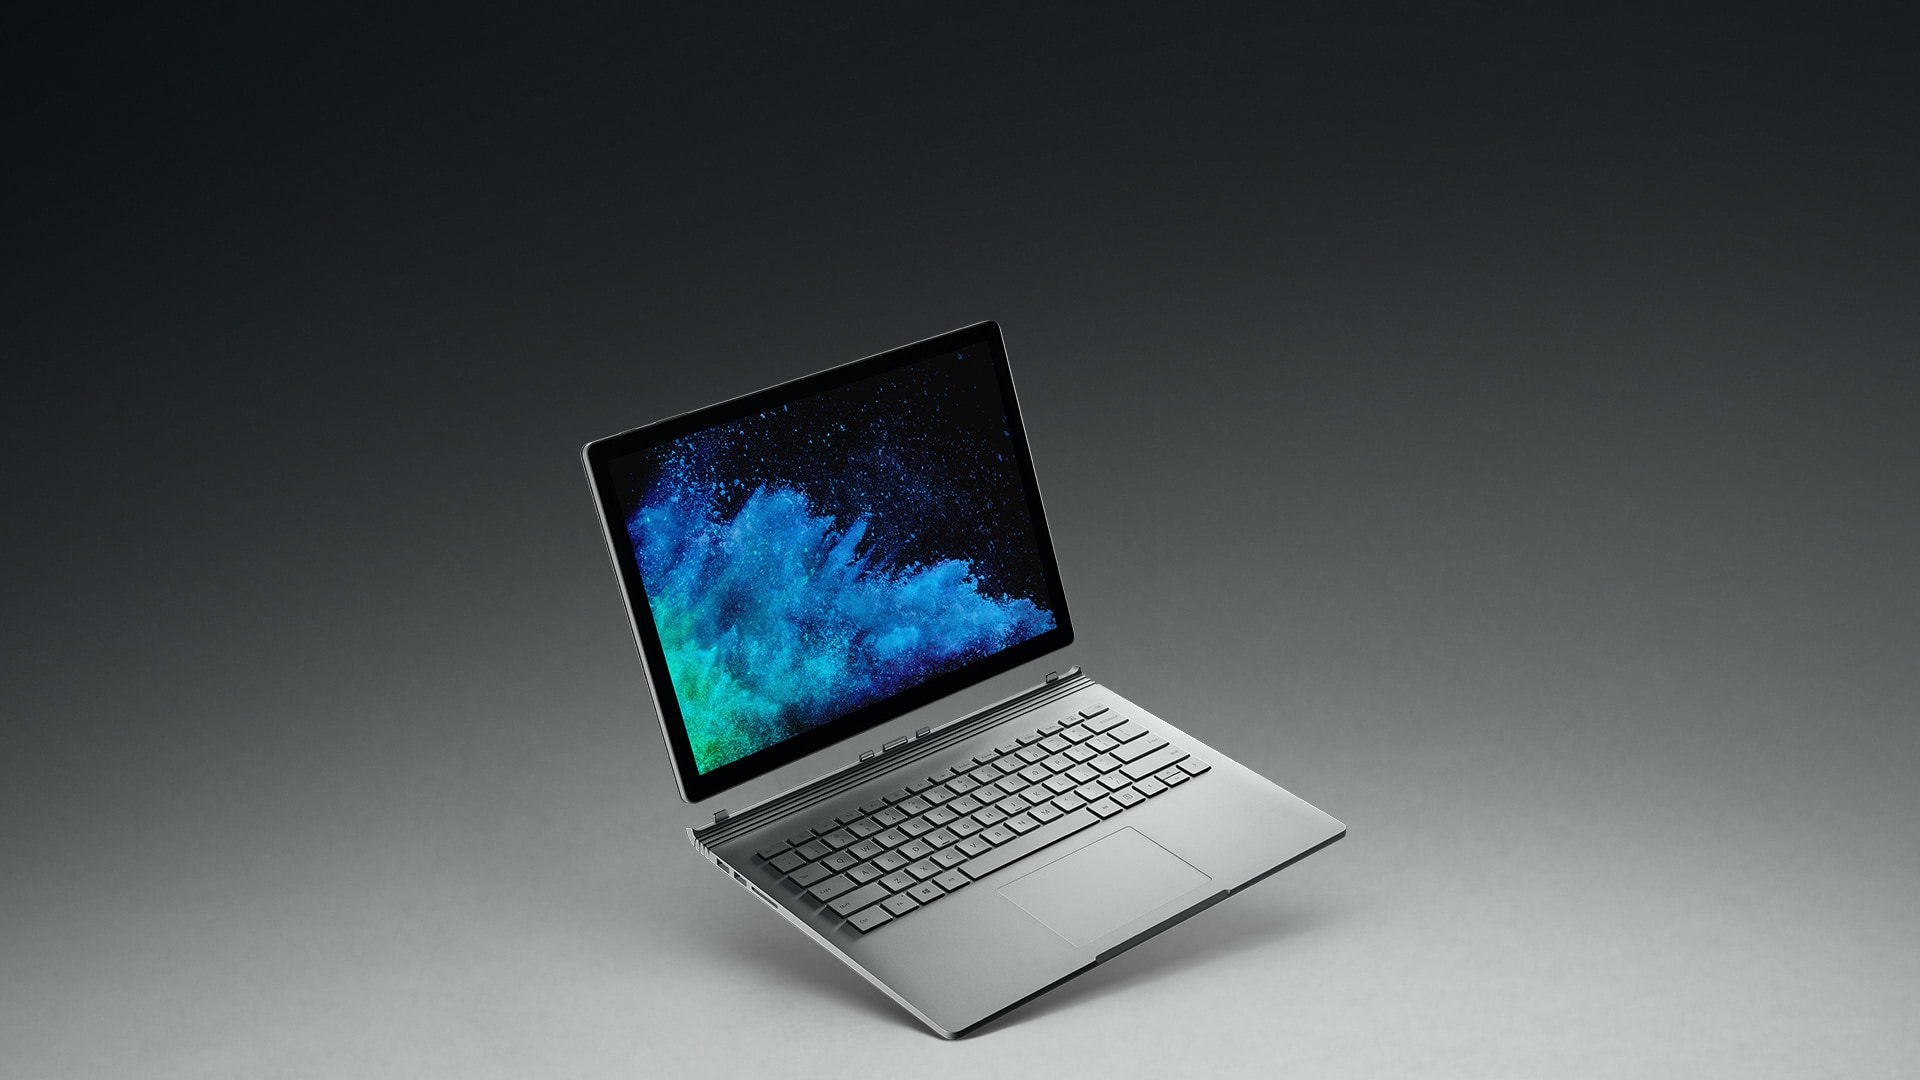 surface book 2 a powerhouse laptop with pixelsense from microsoft. Black Bedroom Furniture Sets. Home Design Ideas